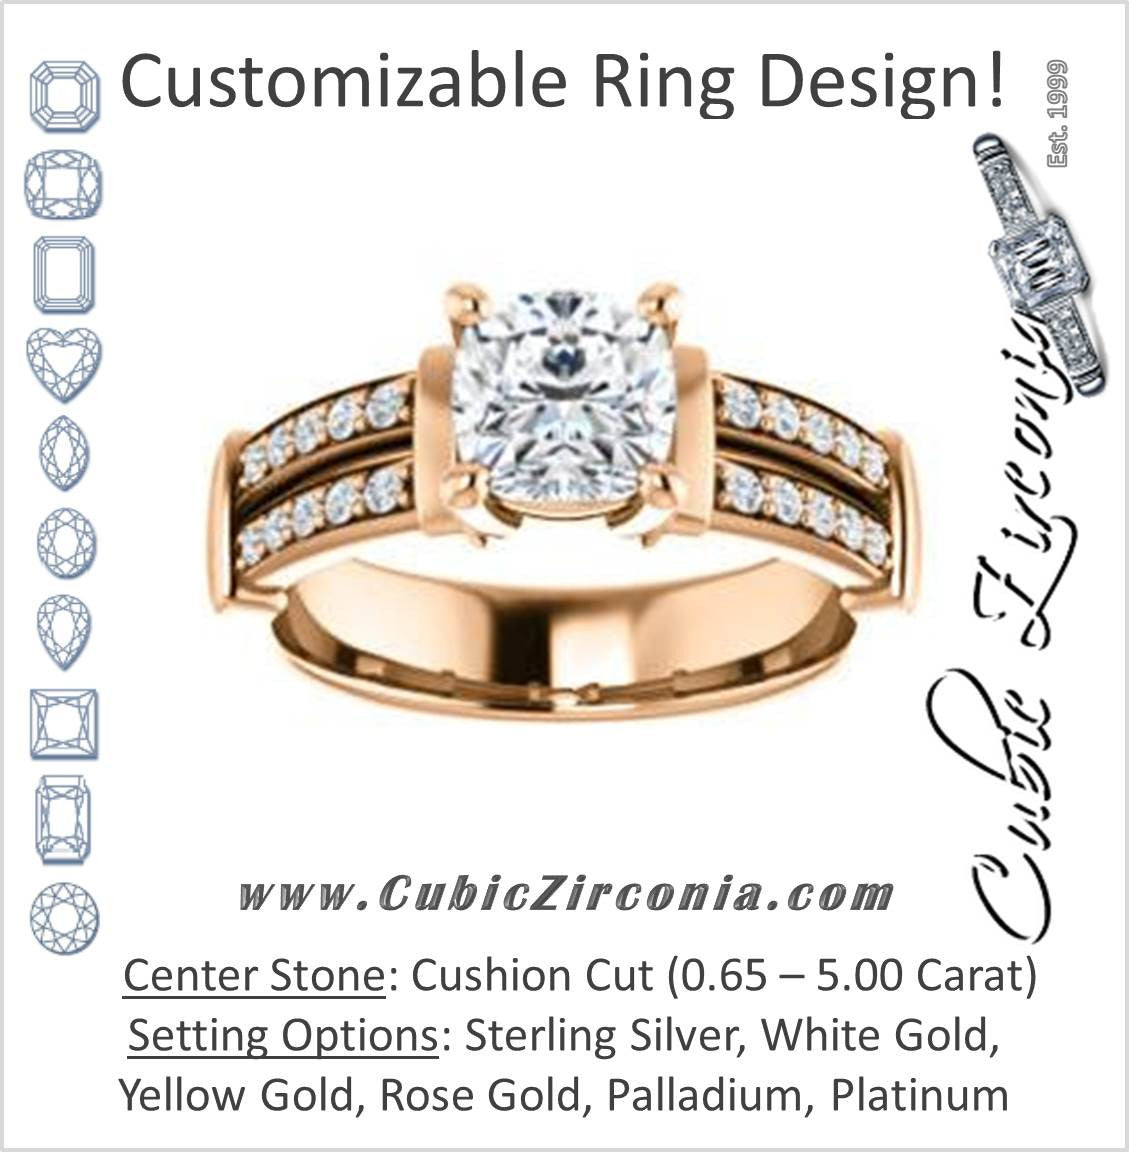 Cubic Zirconia Engagement Ring The Rachana Customizable Cushion Cut Design With Wide Split Pave Band And Euro Shank